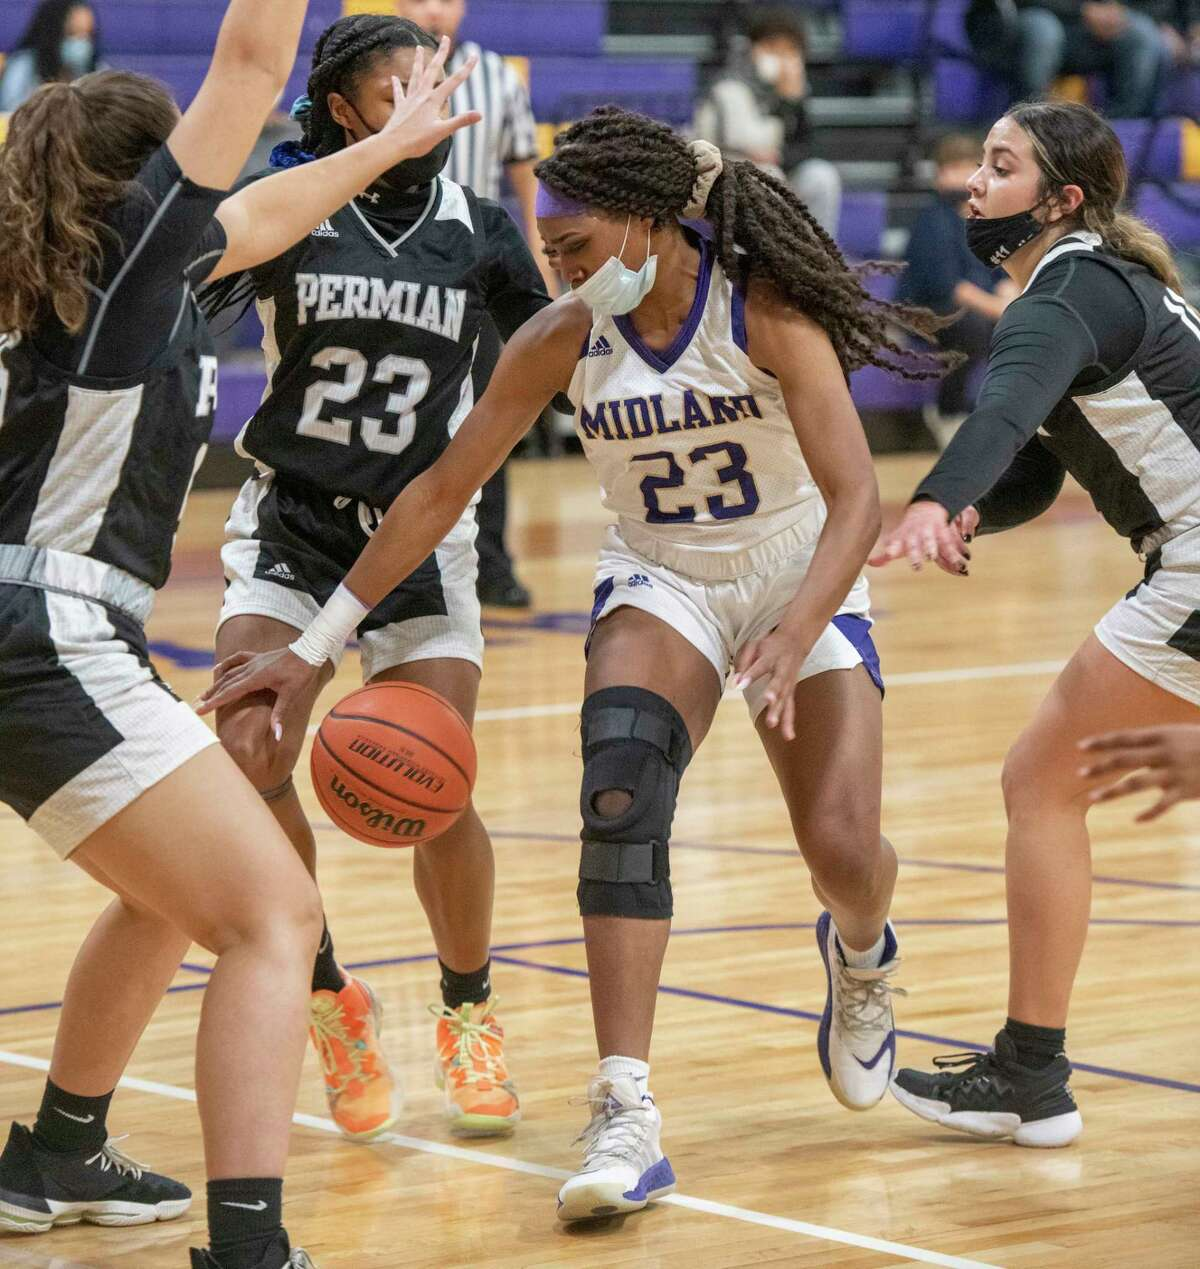 Midland Hhigh's Kobe Powell looses control as she tries to drive the lane between Permian defenders 01/26/2021 at the Midland High gym. Tim Fischer/Reporter-Telegram